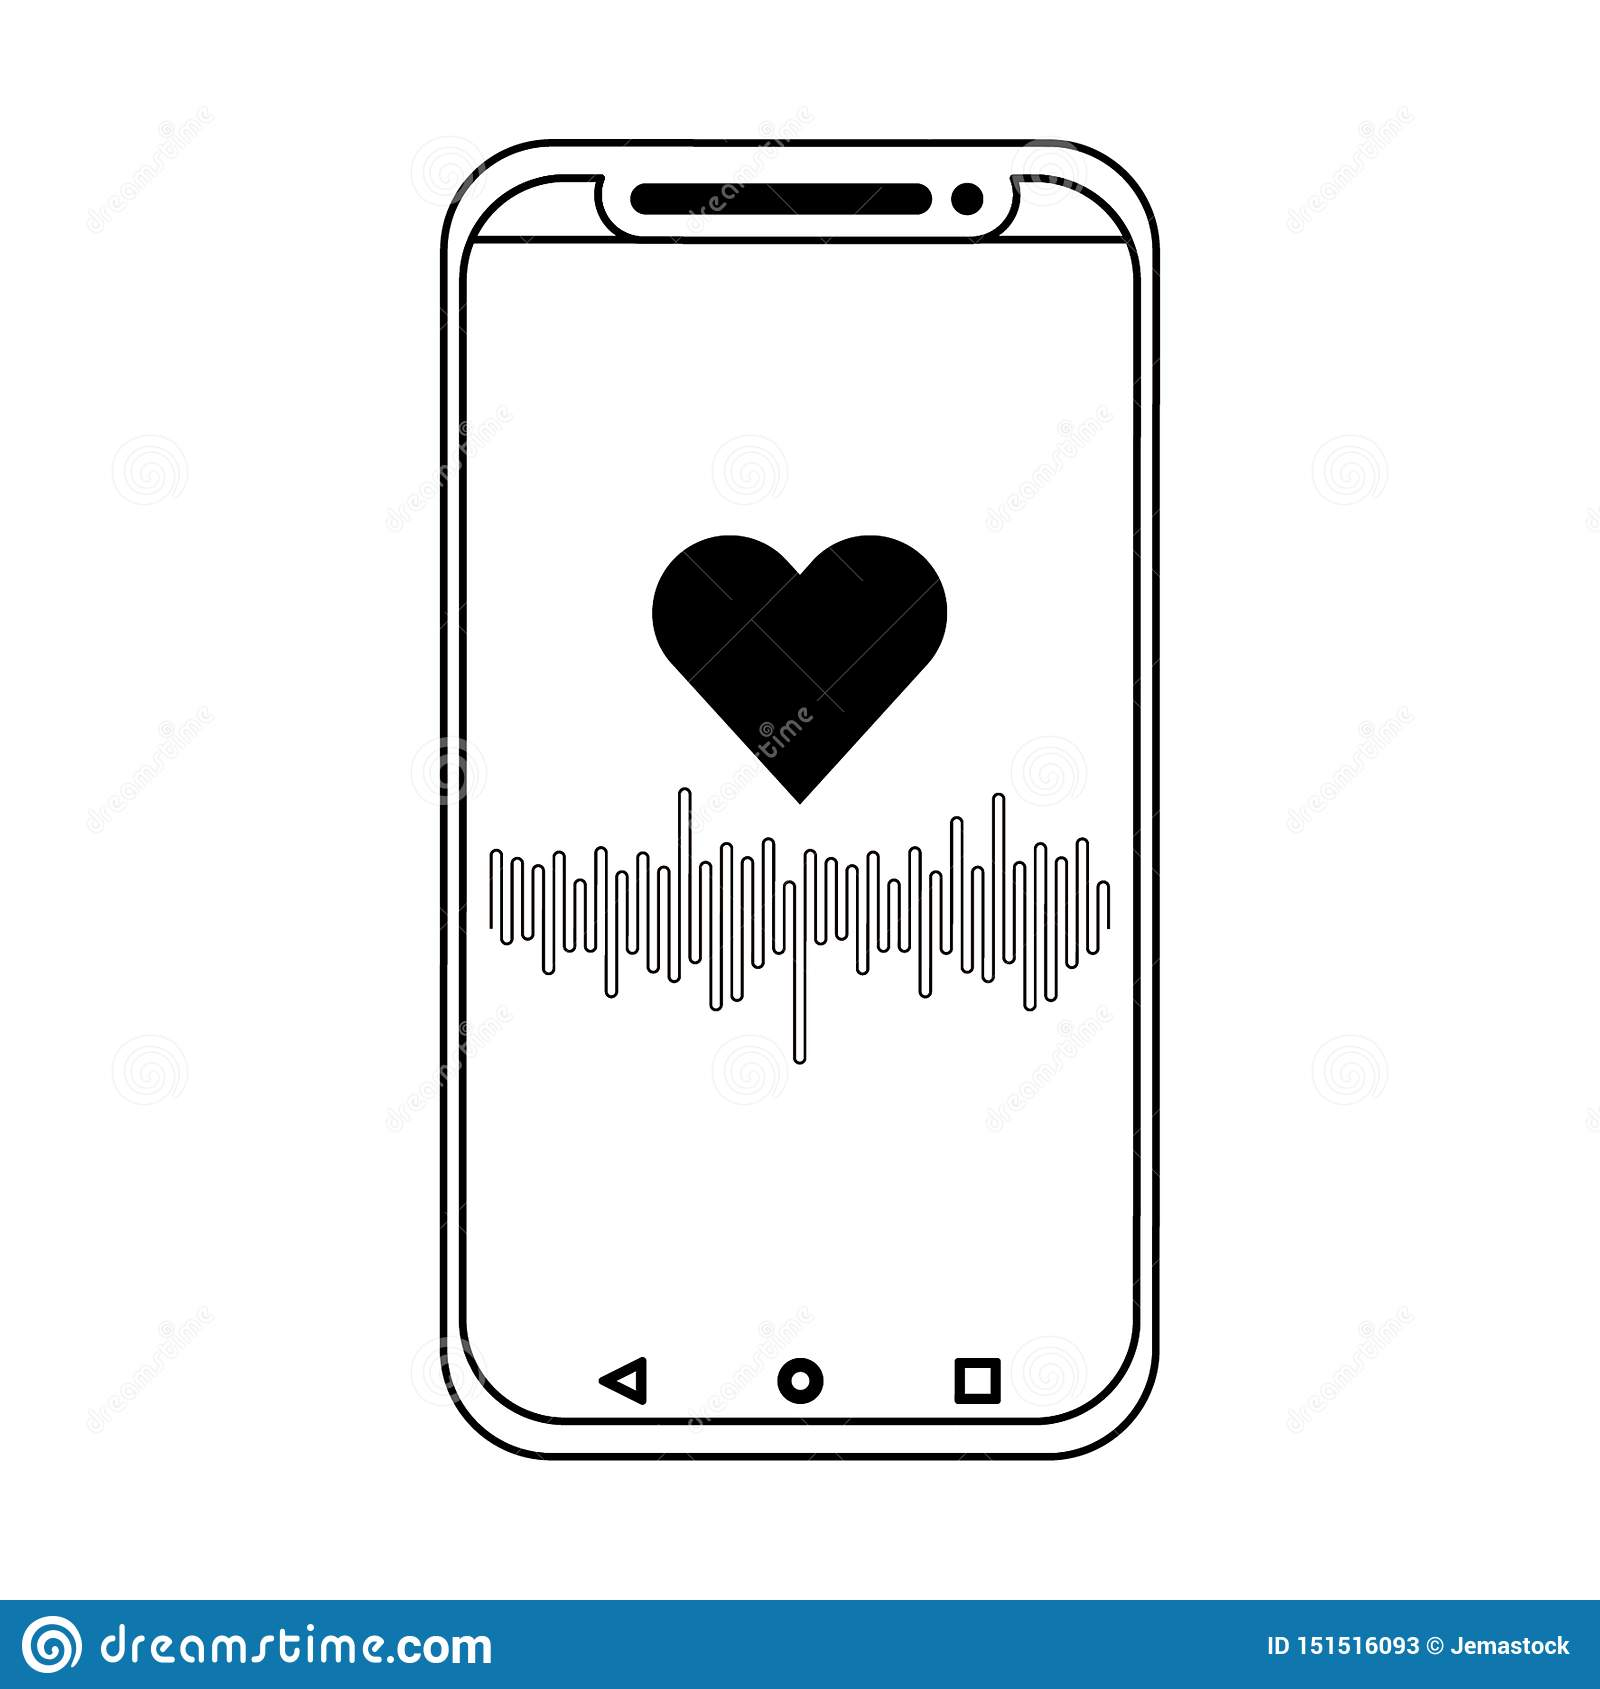 Smarthphone with cardiac frecuency app in black and white